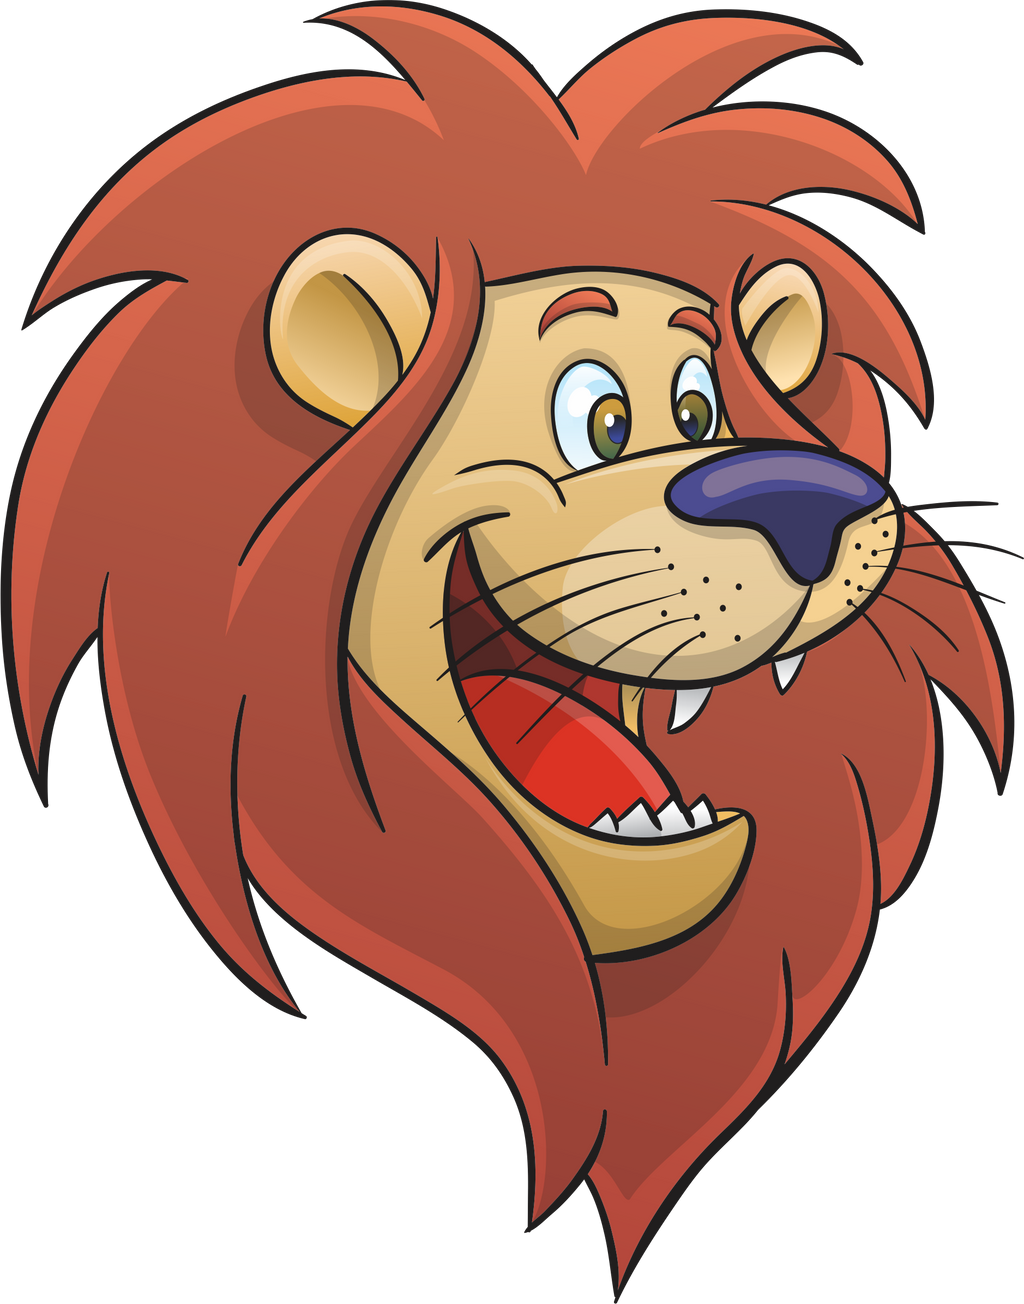 cartoon lion face by alexmarques on deviantart rh deviantart com lion cartoon face clipart lion face cartoon pic